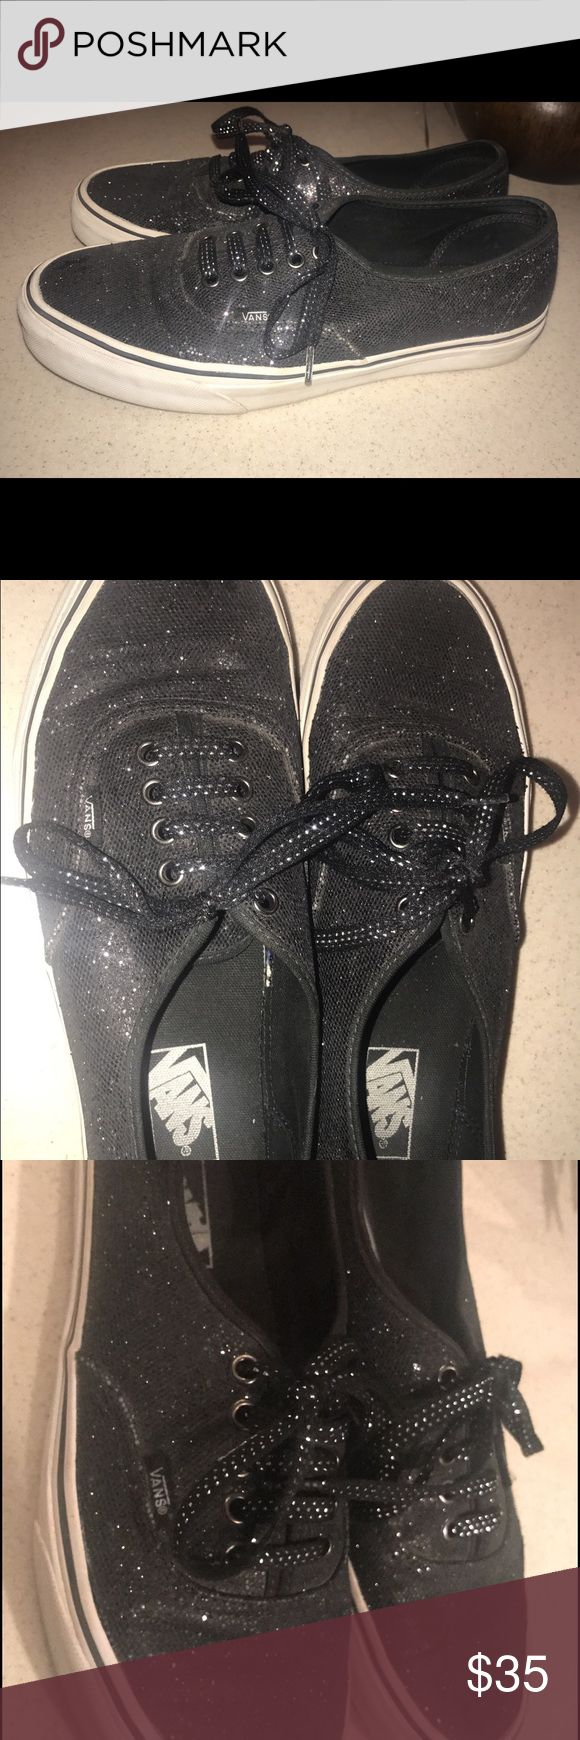 Black glitter vans men's size 9 Black glitter vans men's size 9, worn around 3 times Vans Shoes Sneakers